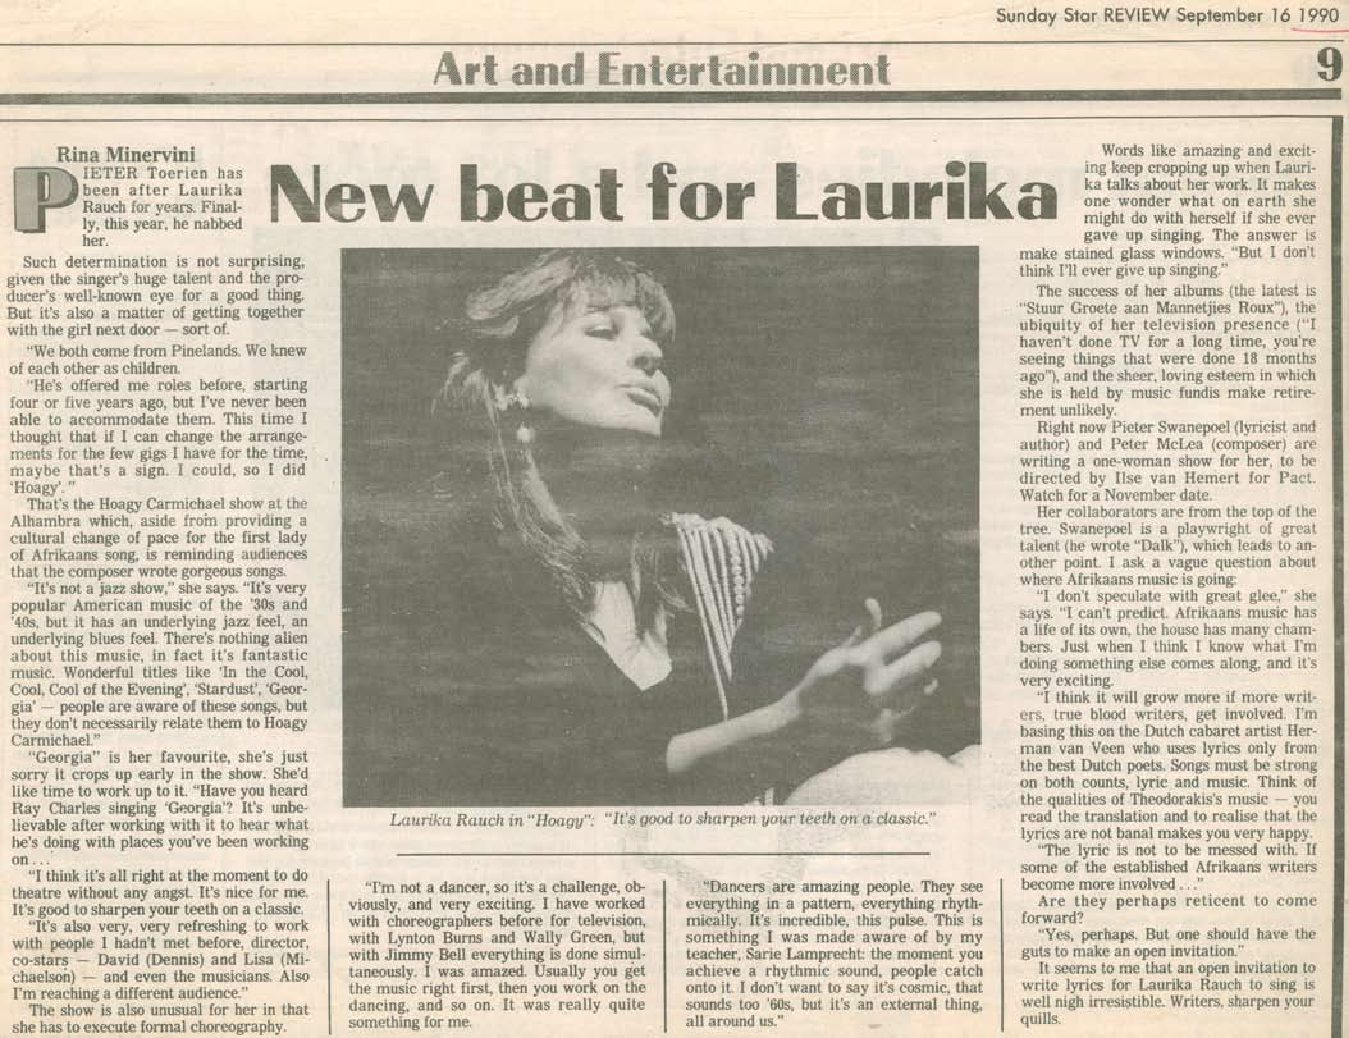 1990-sunday-star-new-beat-for-laurika-updated